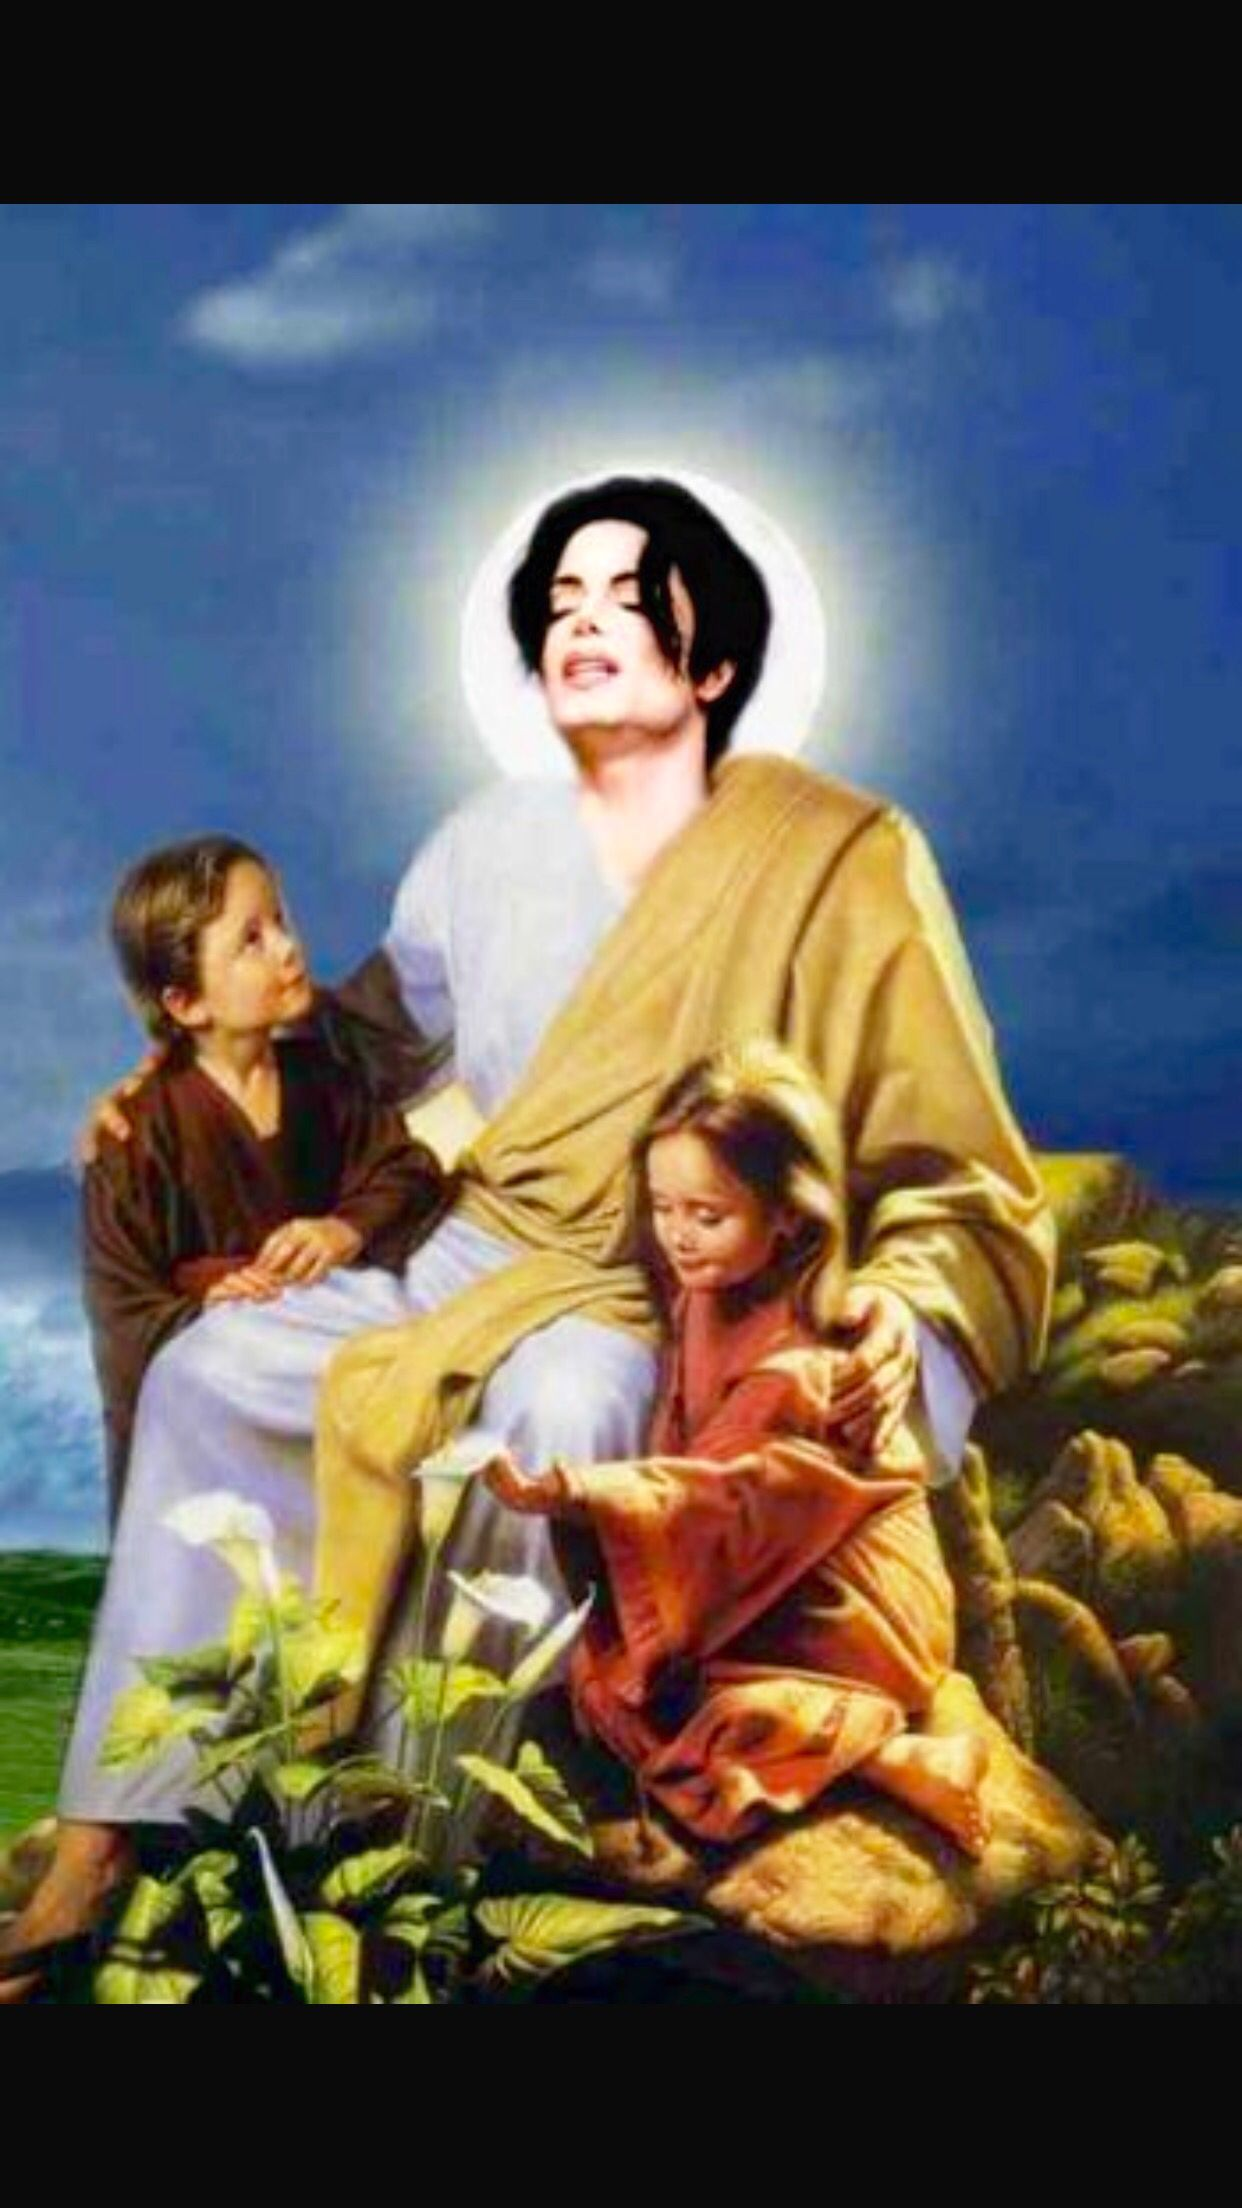 Pin By Christianne Bynon On Michael Jackson Pinterest Michael - Michael jackson religion